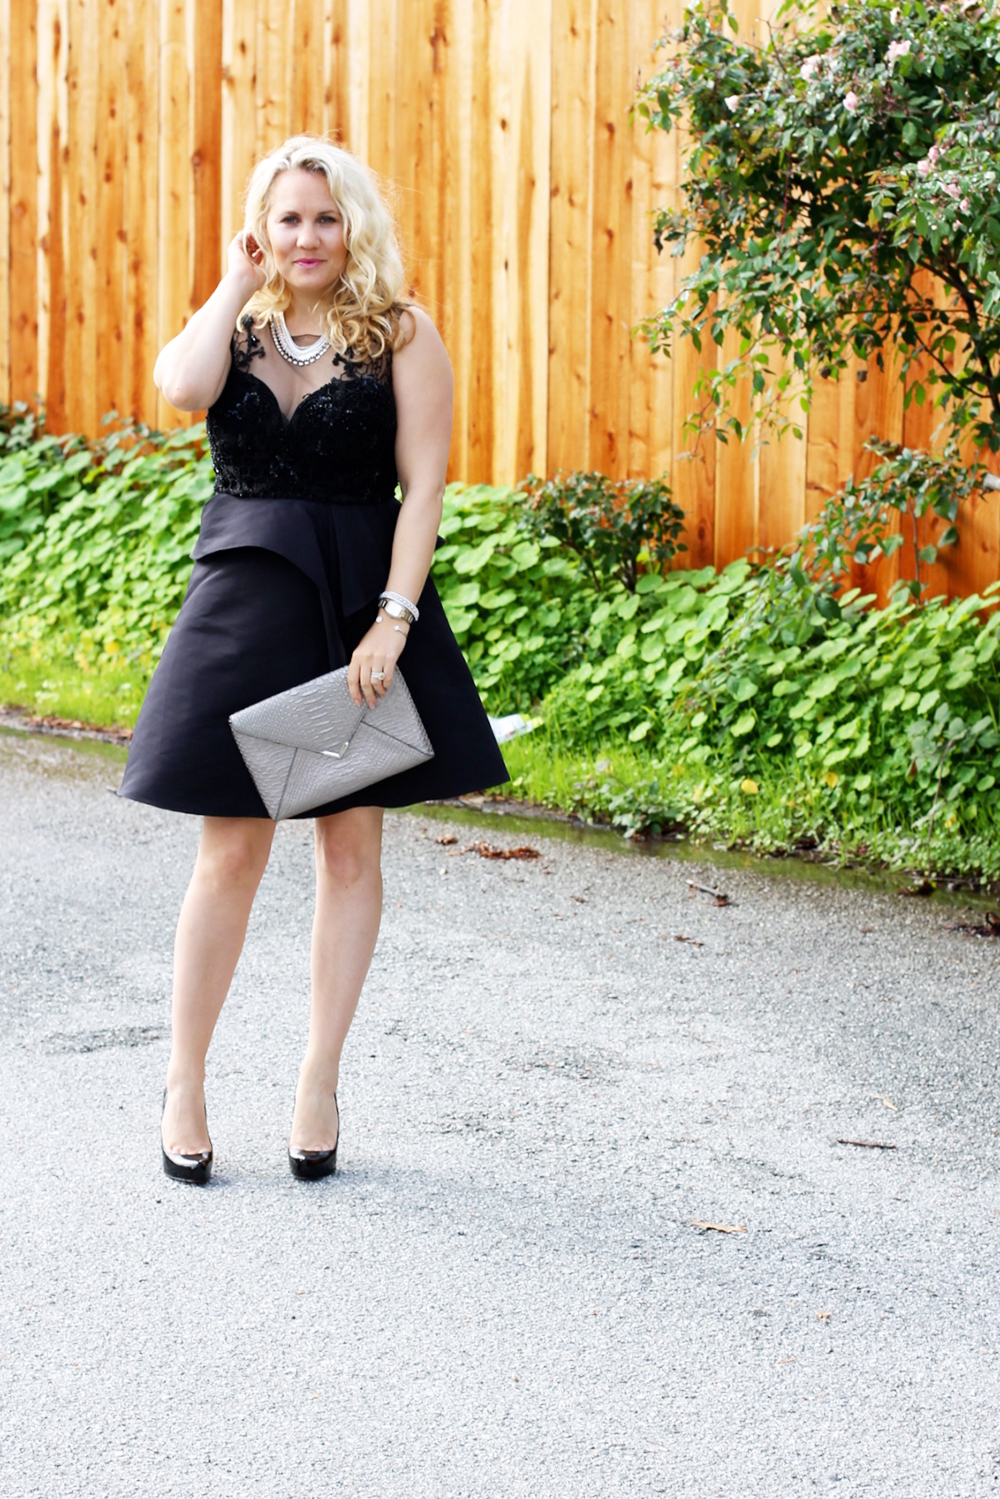 warmest-wishes-this-holiday-season-have-need-want-holiday-style-lbd-outfit-inspiration-12